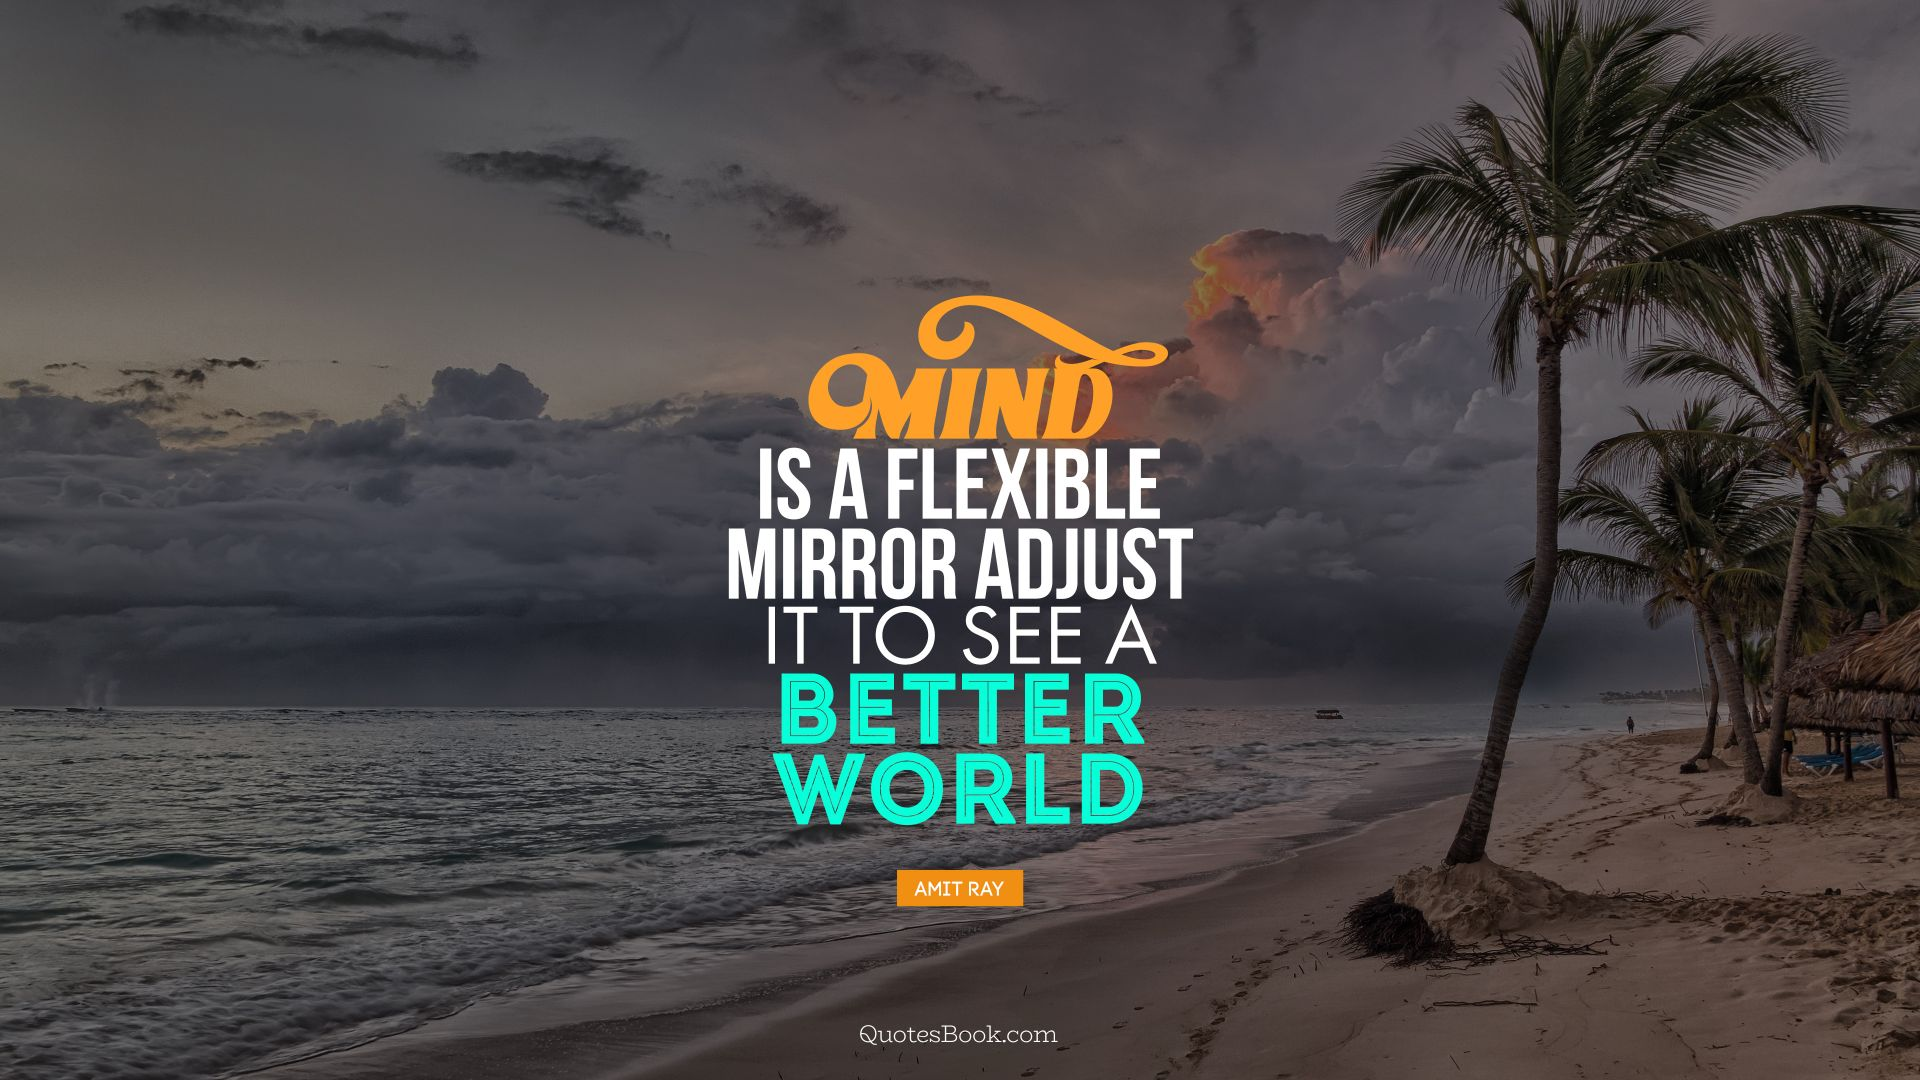 Mind is a flexible mirror adjust it to see a better world. - Quote by Amit Ray